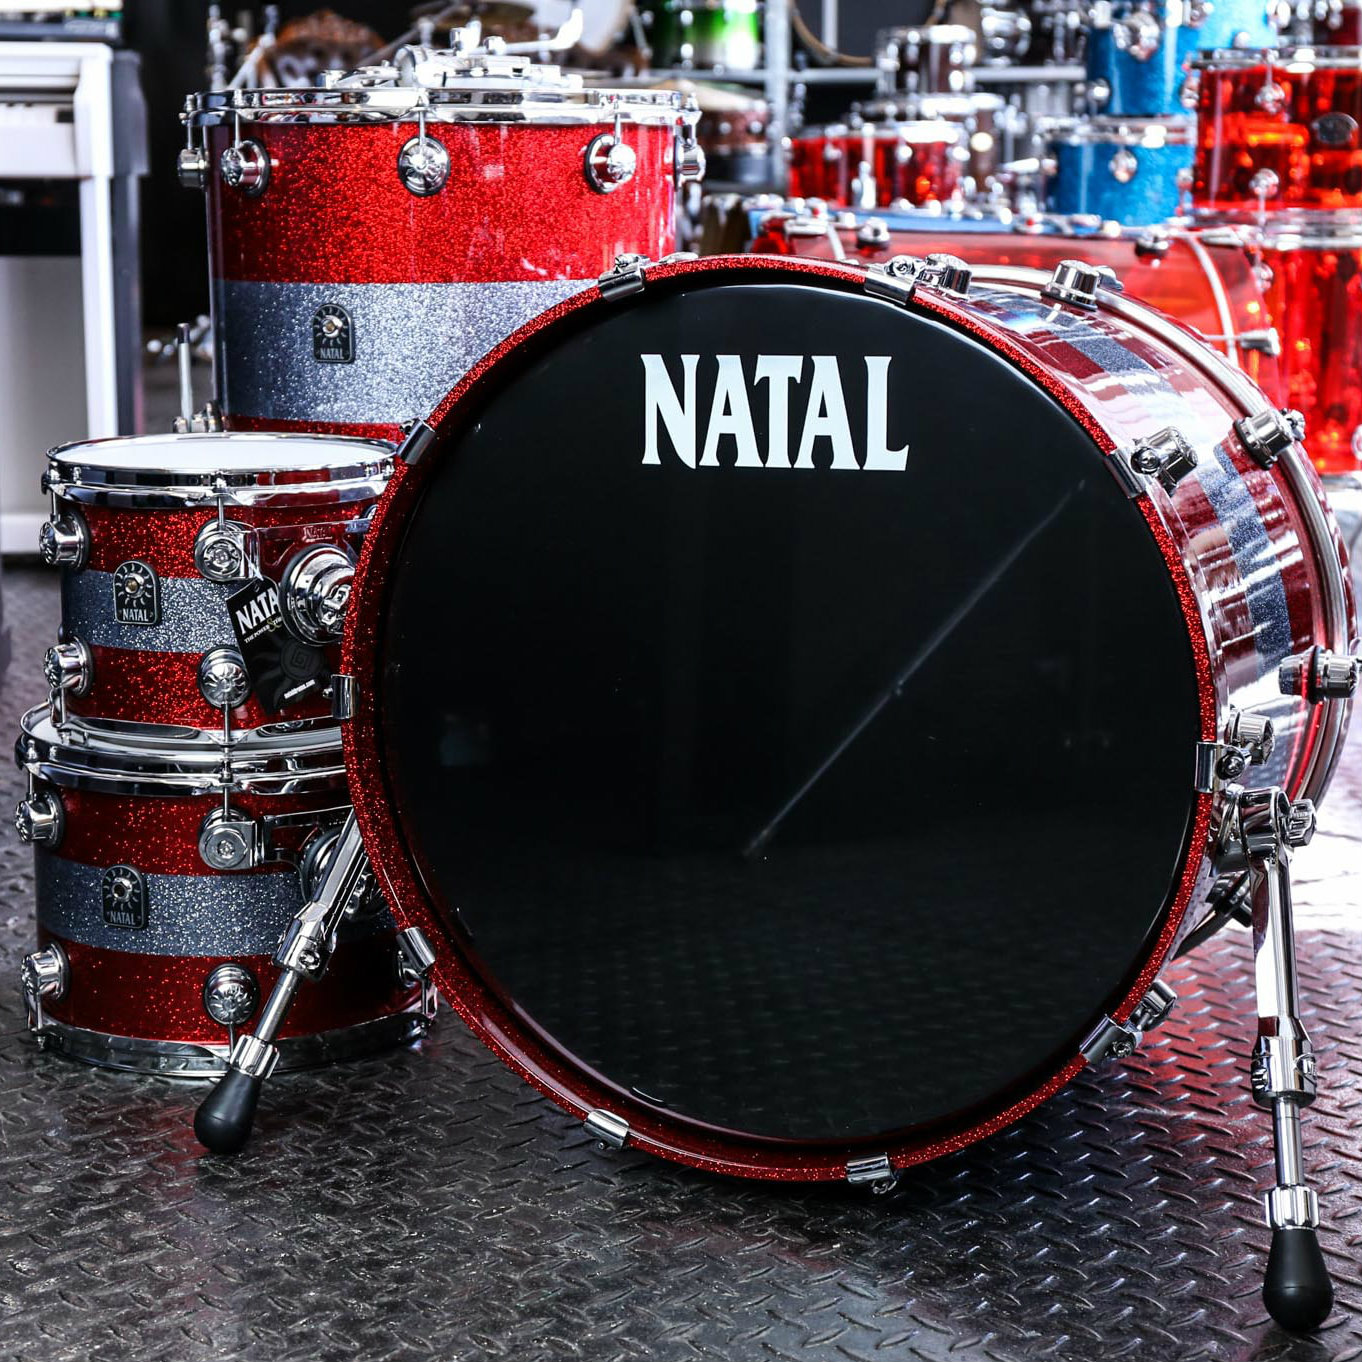 Natal Drums UK